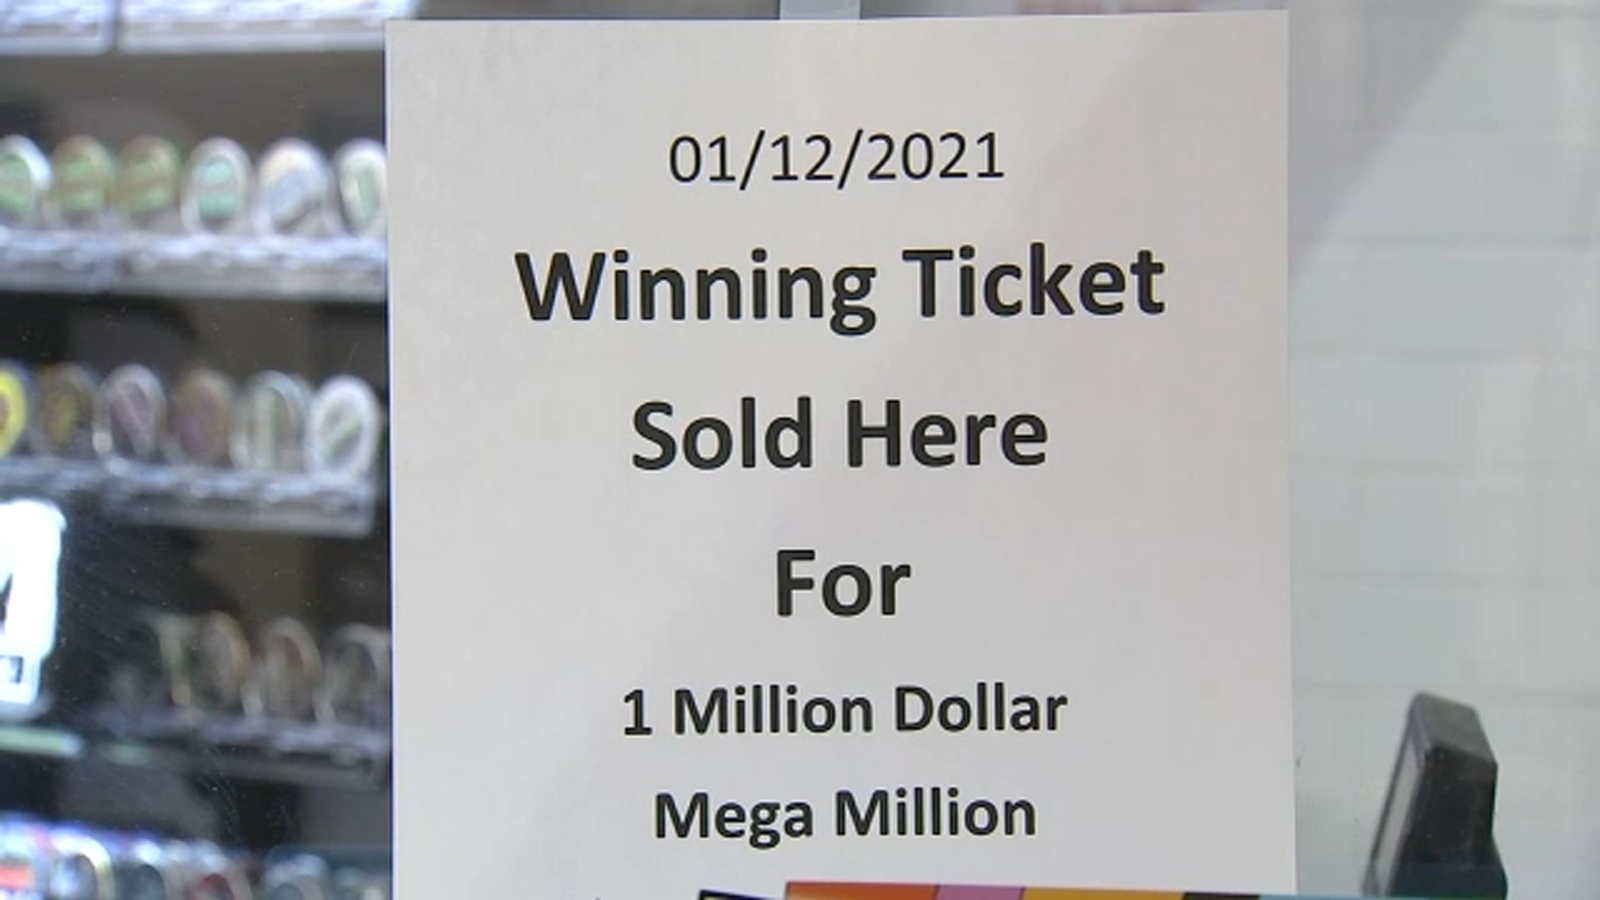 Mega Millions draw time: A million dollar ticket was purchased at Roscoe Village 711 in West Belmont, Chicago